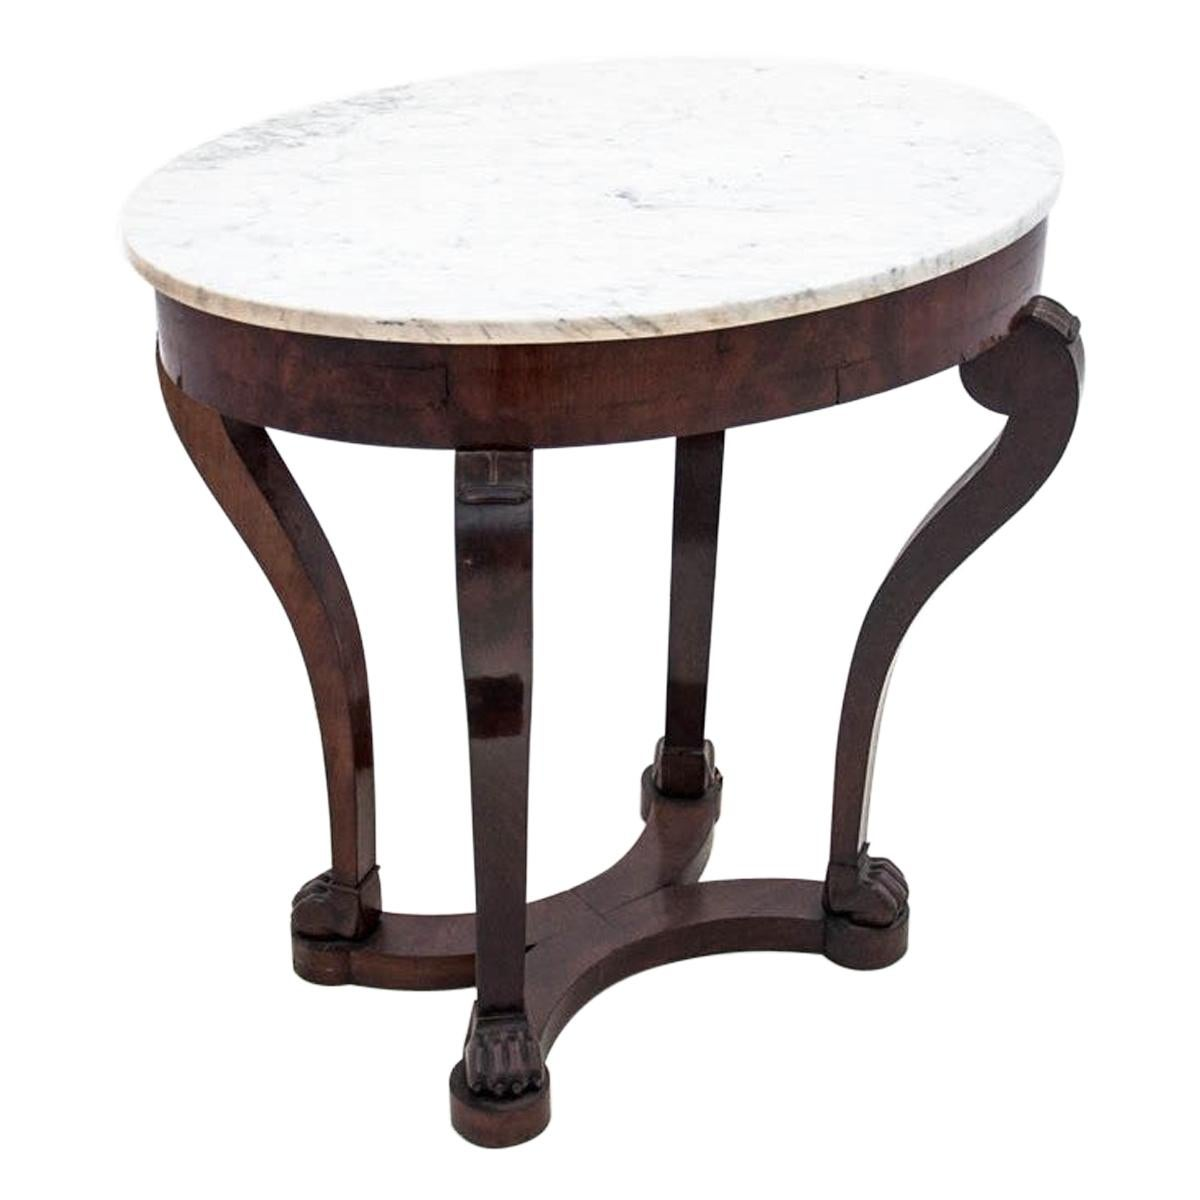 Coffee Table with Marble Top, France, circa 1910